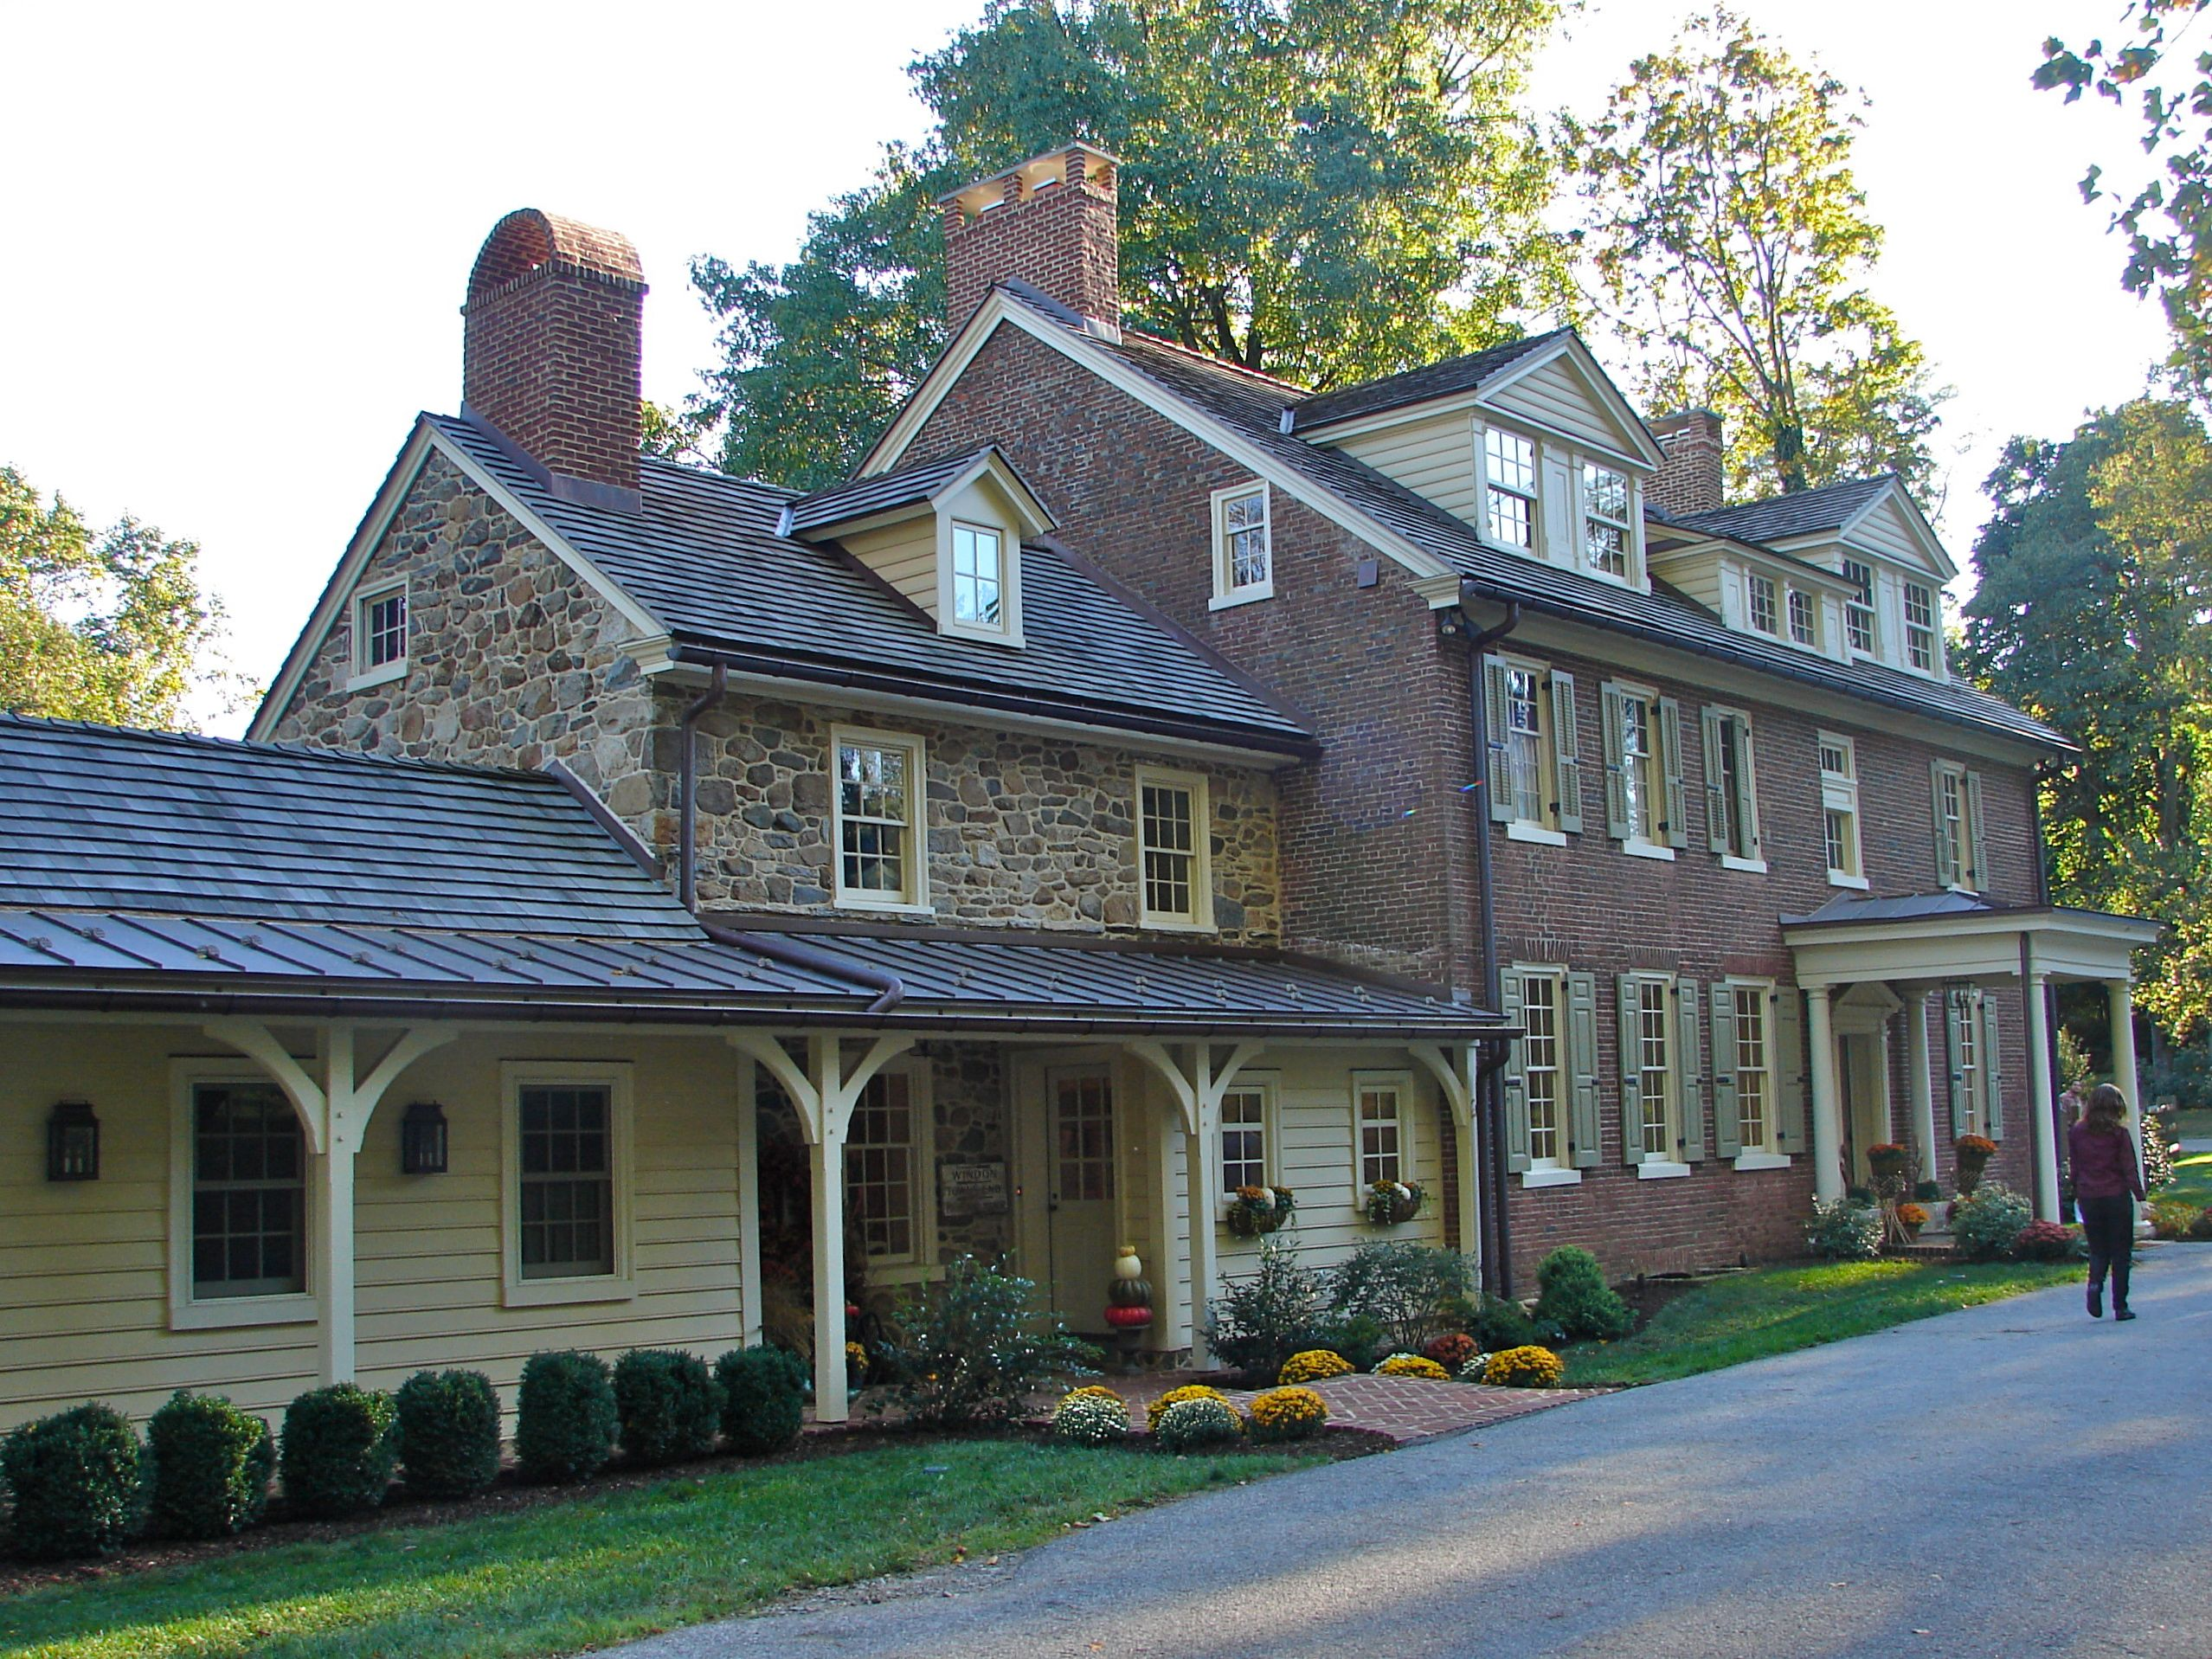 Stone Farmhouse For Sale Pa File Towns End West Chester Pennsylvania Wikimedia